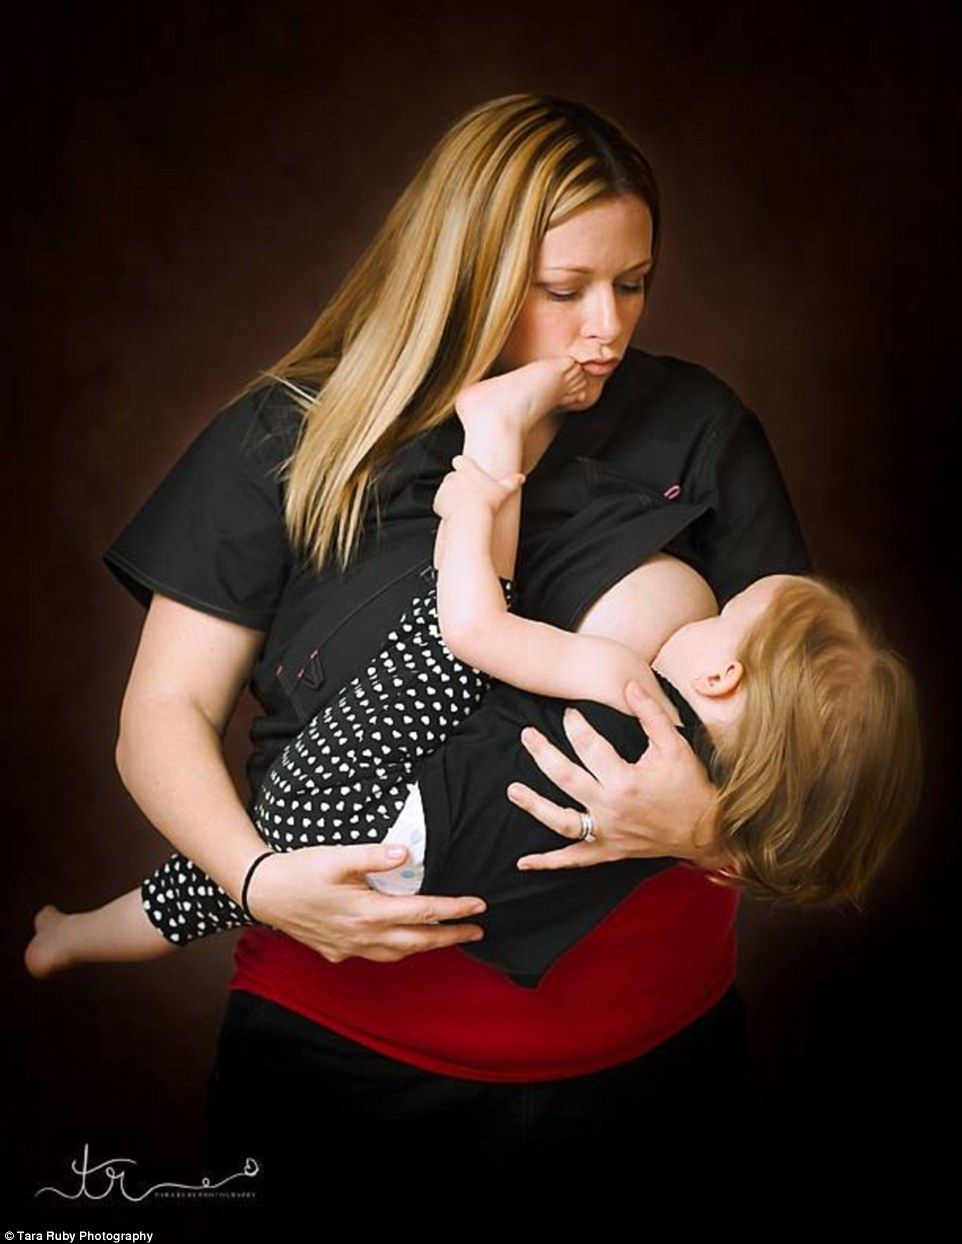 332EC95200000578-3540740-Never_a_dull_moment_This_mom_said_her_daughter_always_kicks_her_-a-4_1460672010561